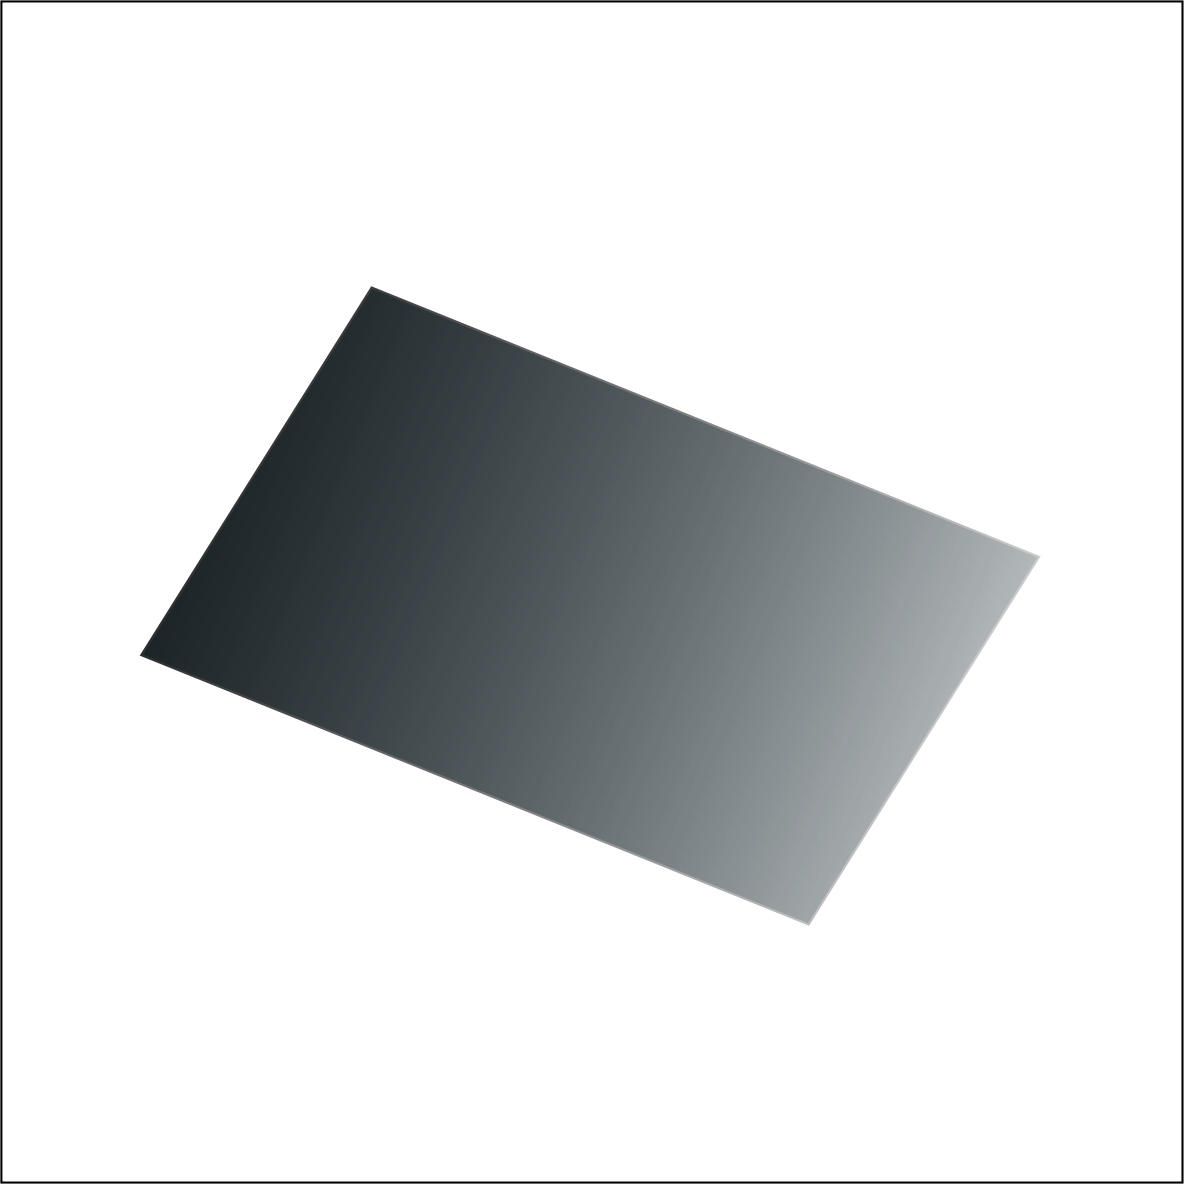 Tiffen ND 9 clear Filter by Accord Equips